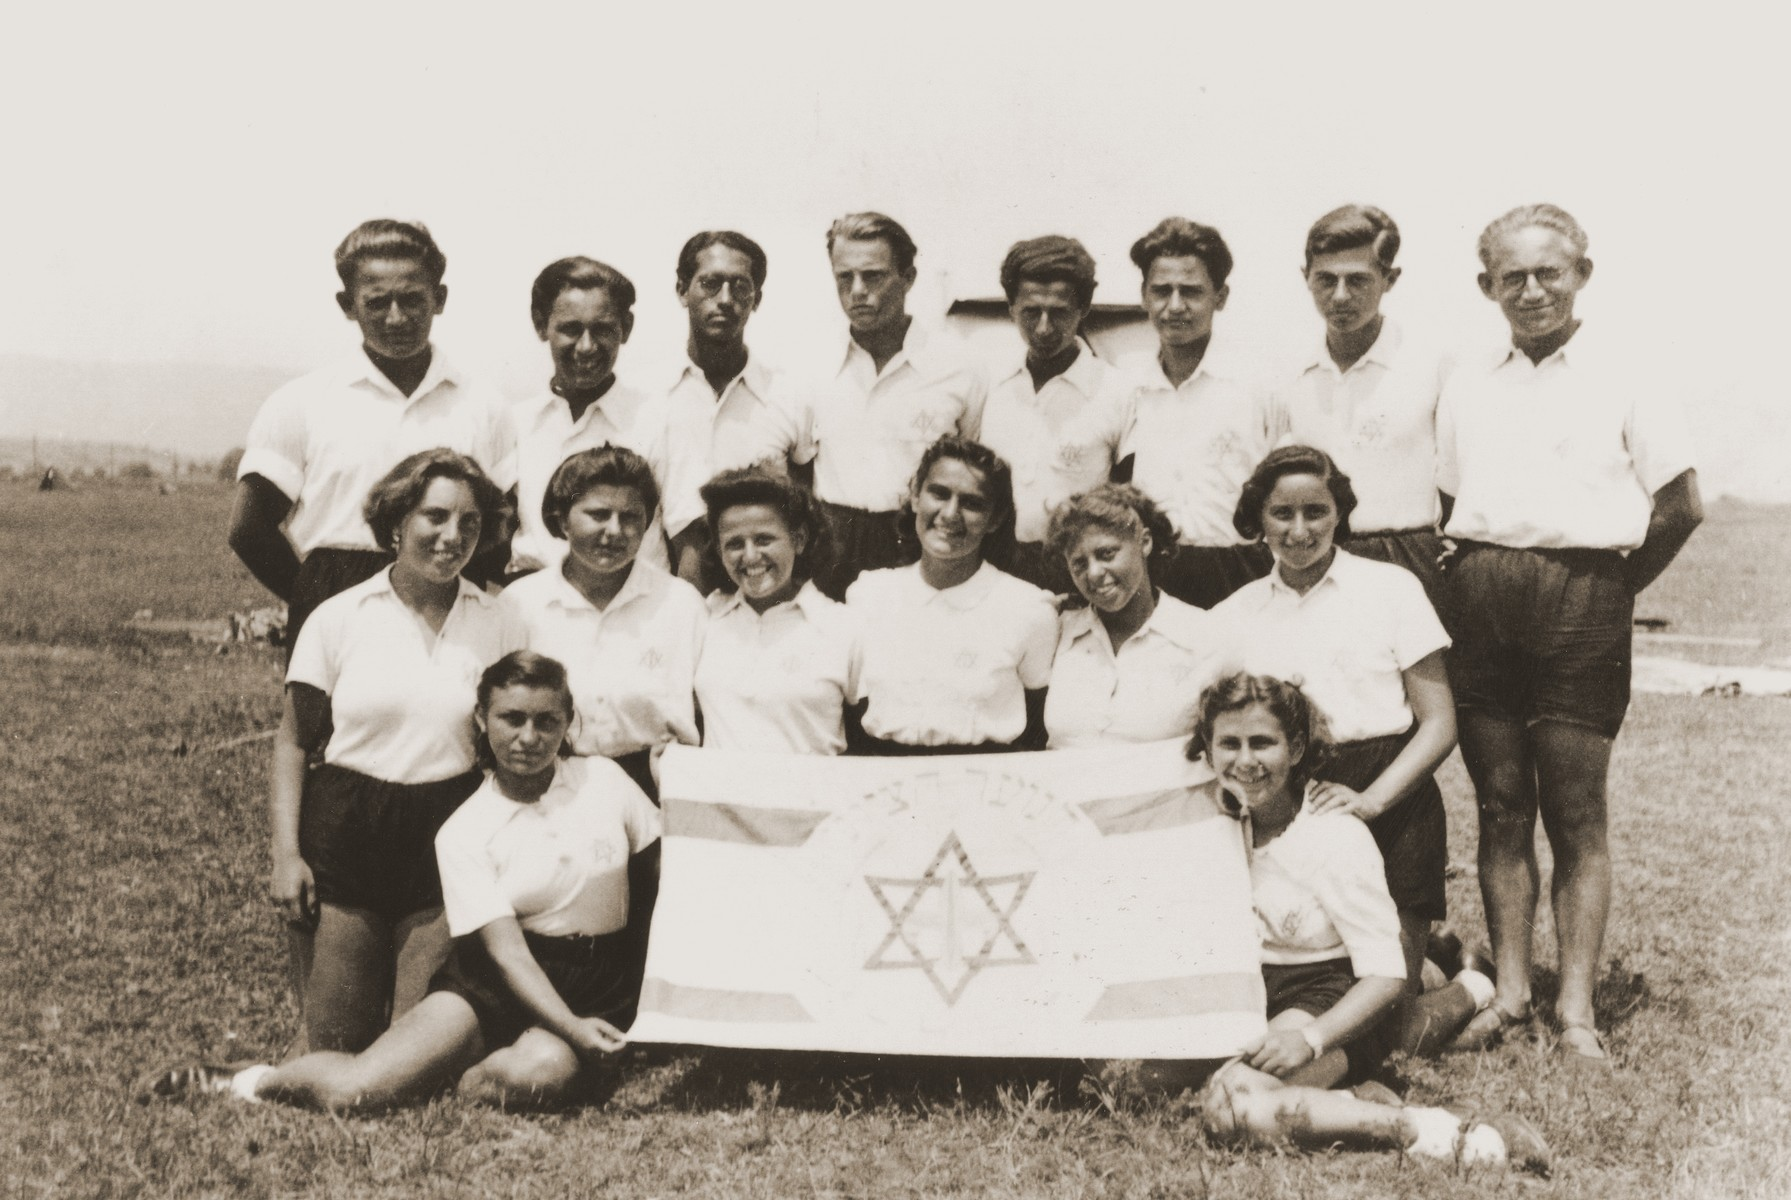 Members of the Zionist youth group Hanoar Hatzioni pose with their movement's flag at a refugee camp for the Kladovo transport.  Standing third from the right is Egon Ostreicher.  Second from the right is Nachum Tabak.